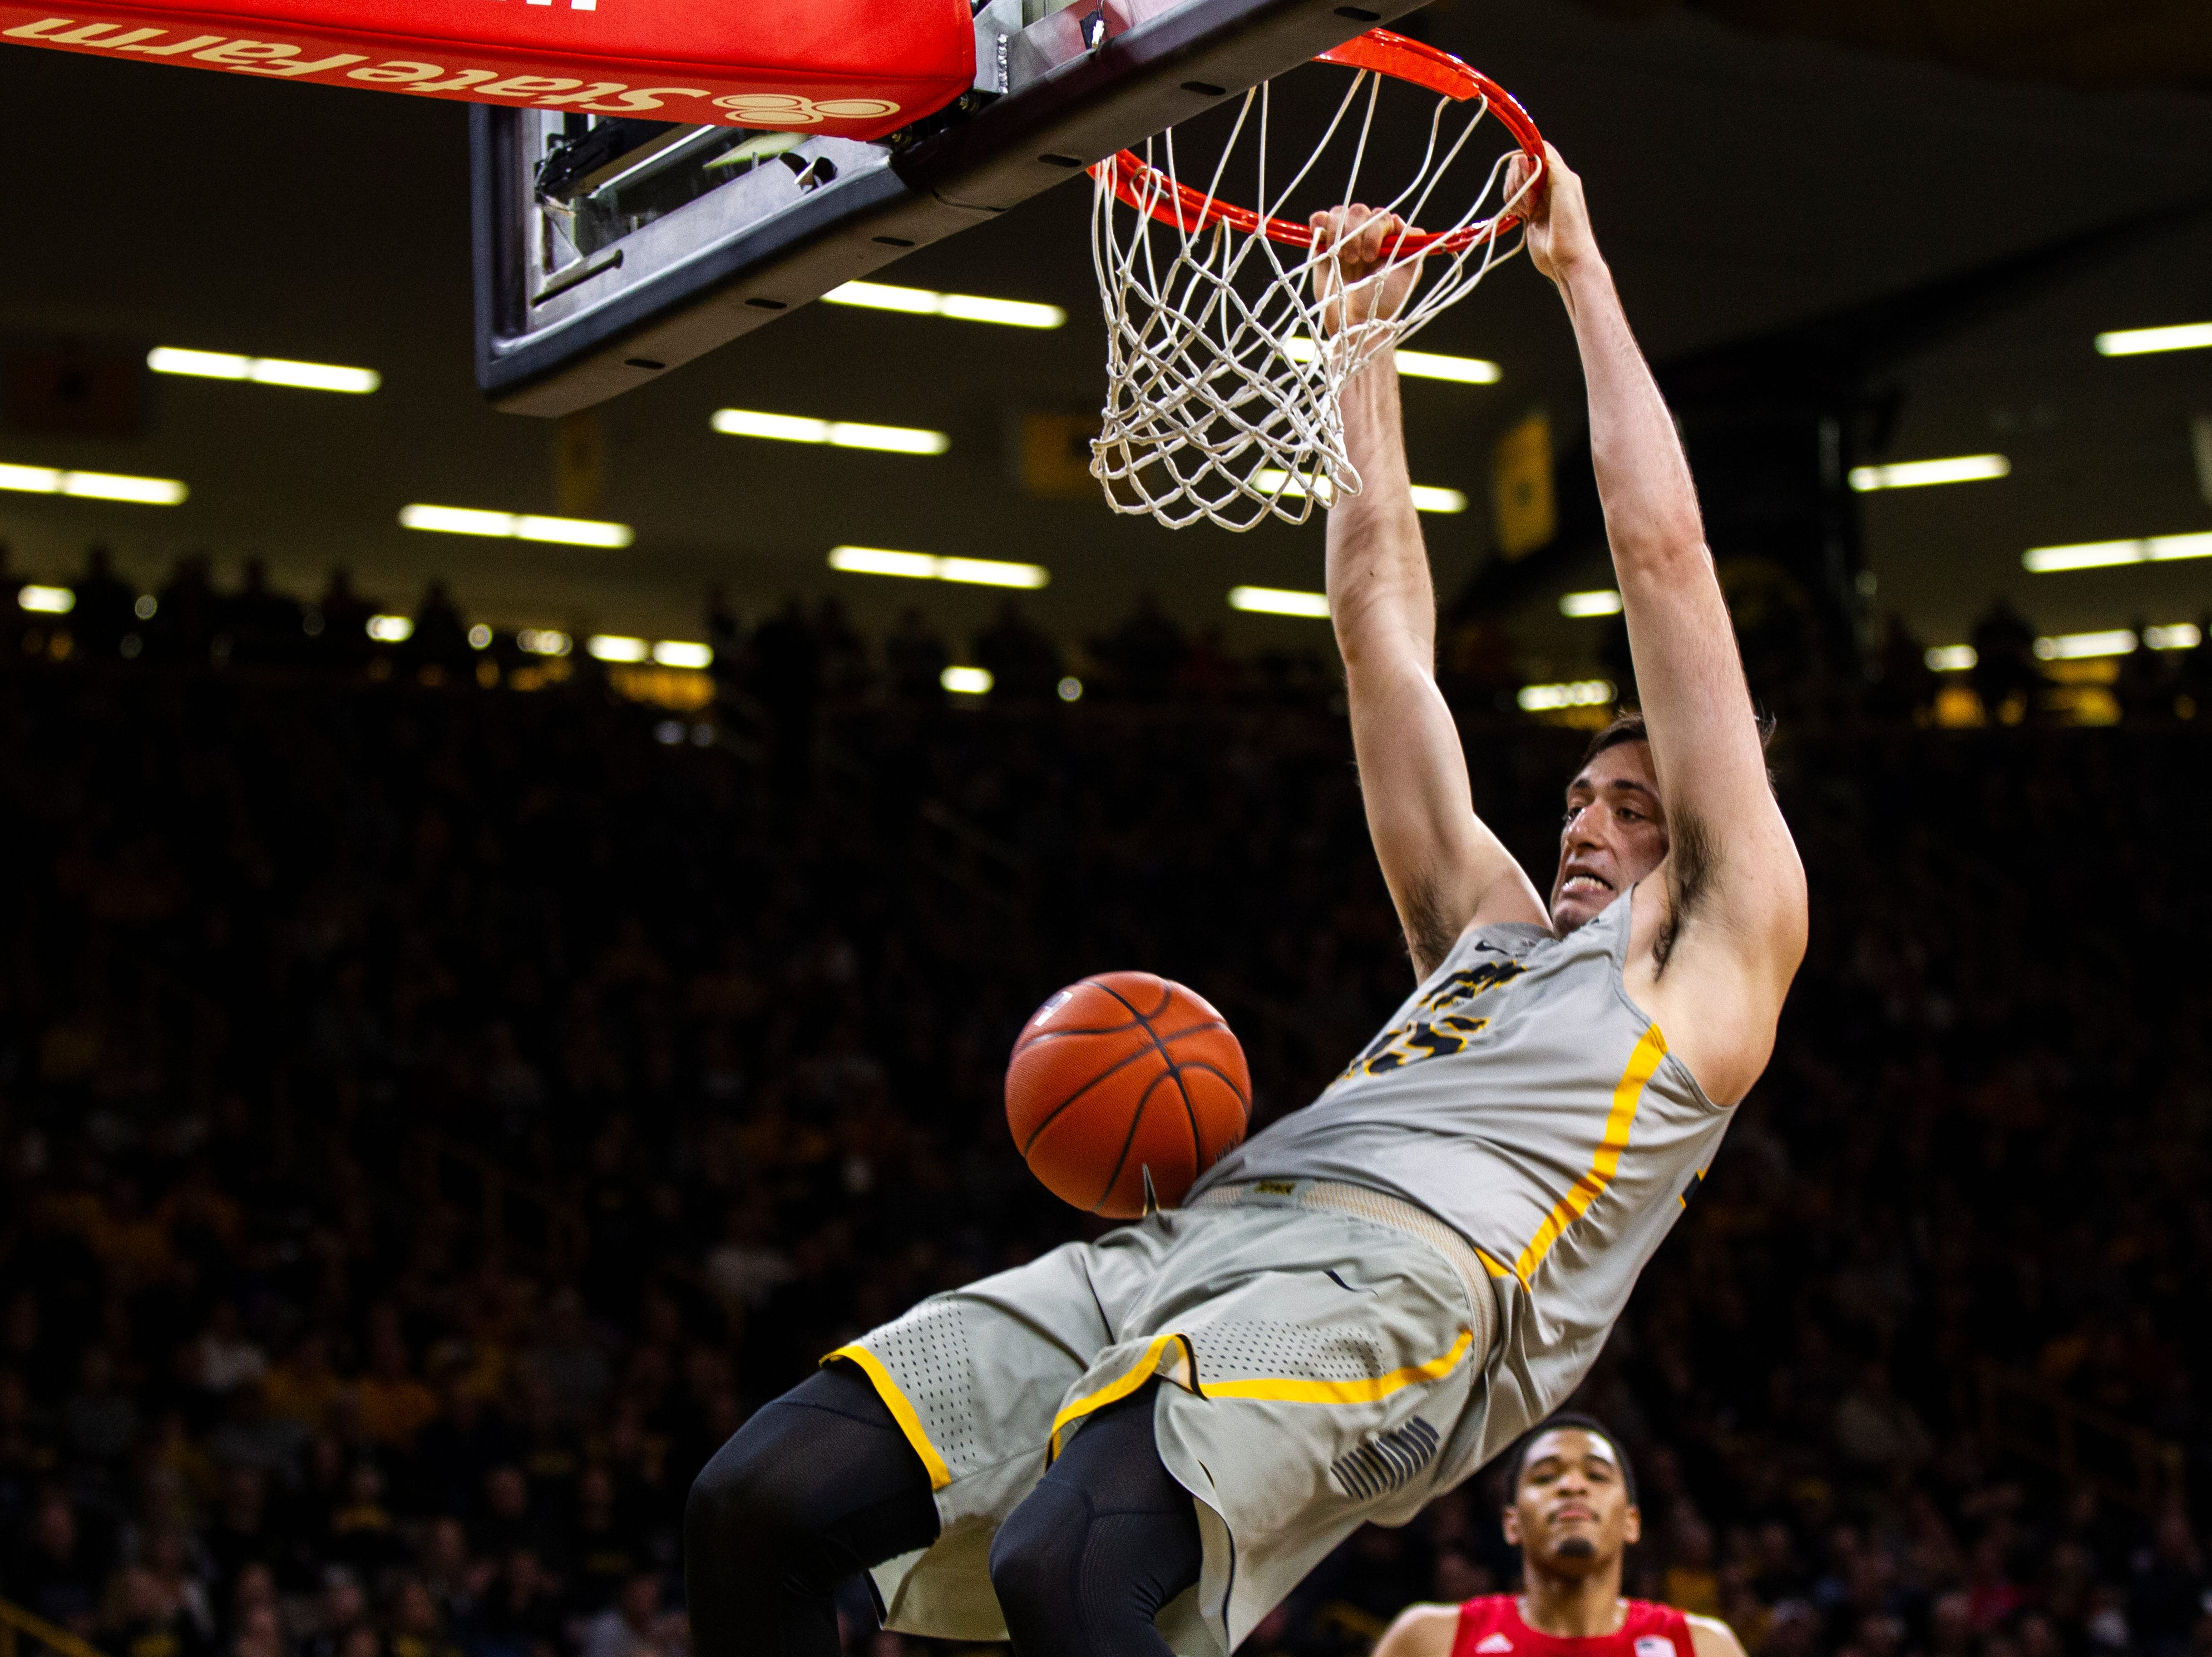 Iowa forward Ryan Kriener (15) dunks during a NCAA Big Ten Conference men's basketball game on Sunday, Jan. 6, 2019, at the Carver-Hawkeye Arena in Iowa City, Iowa.